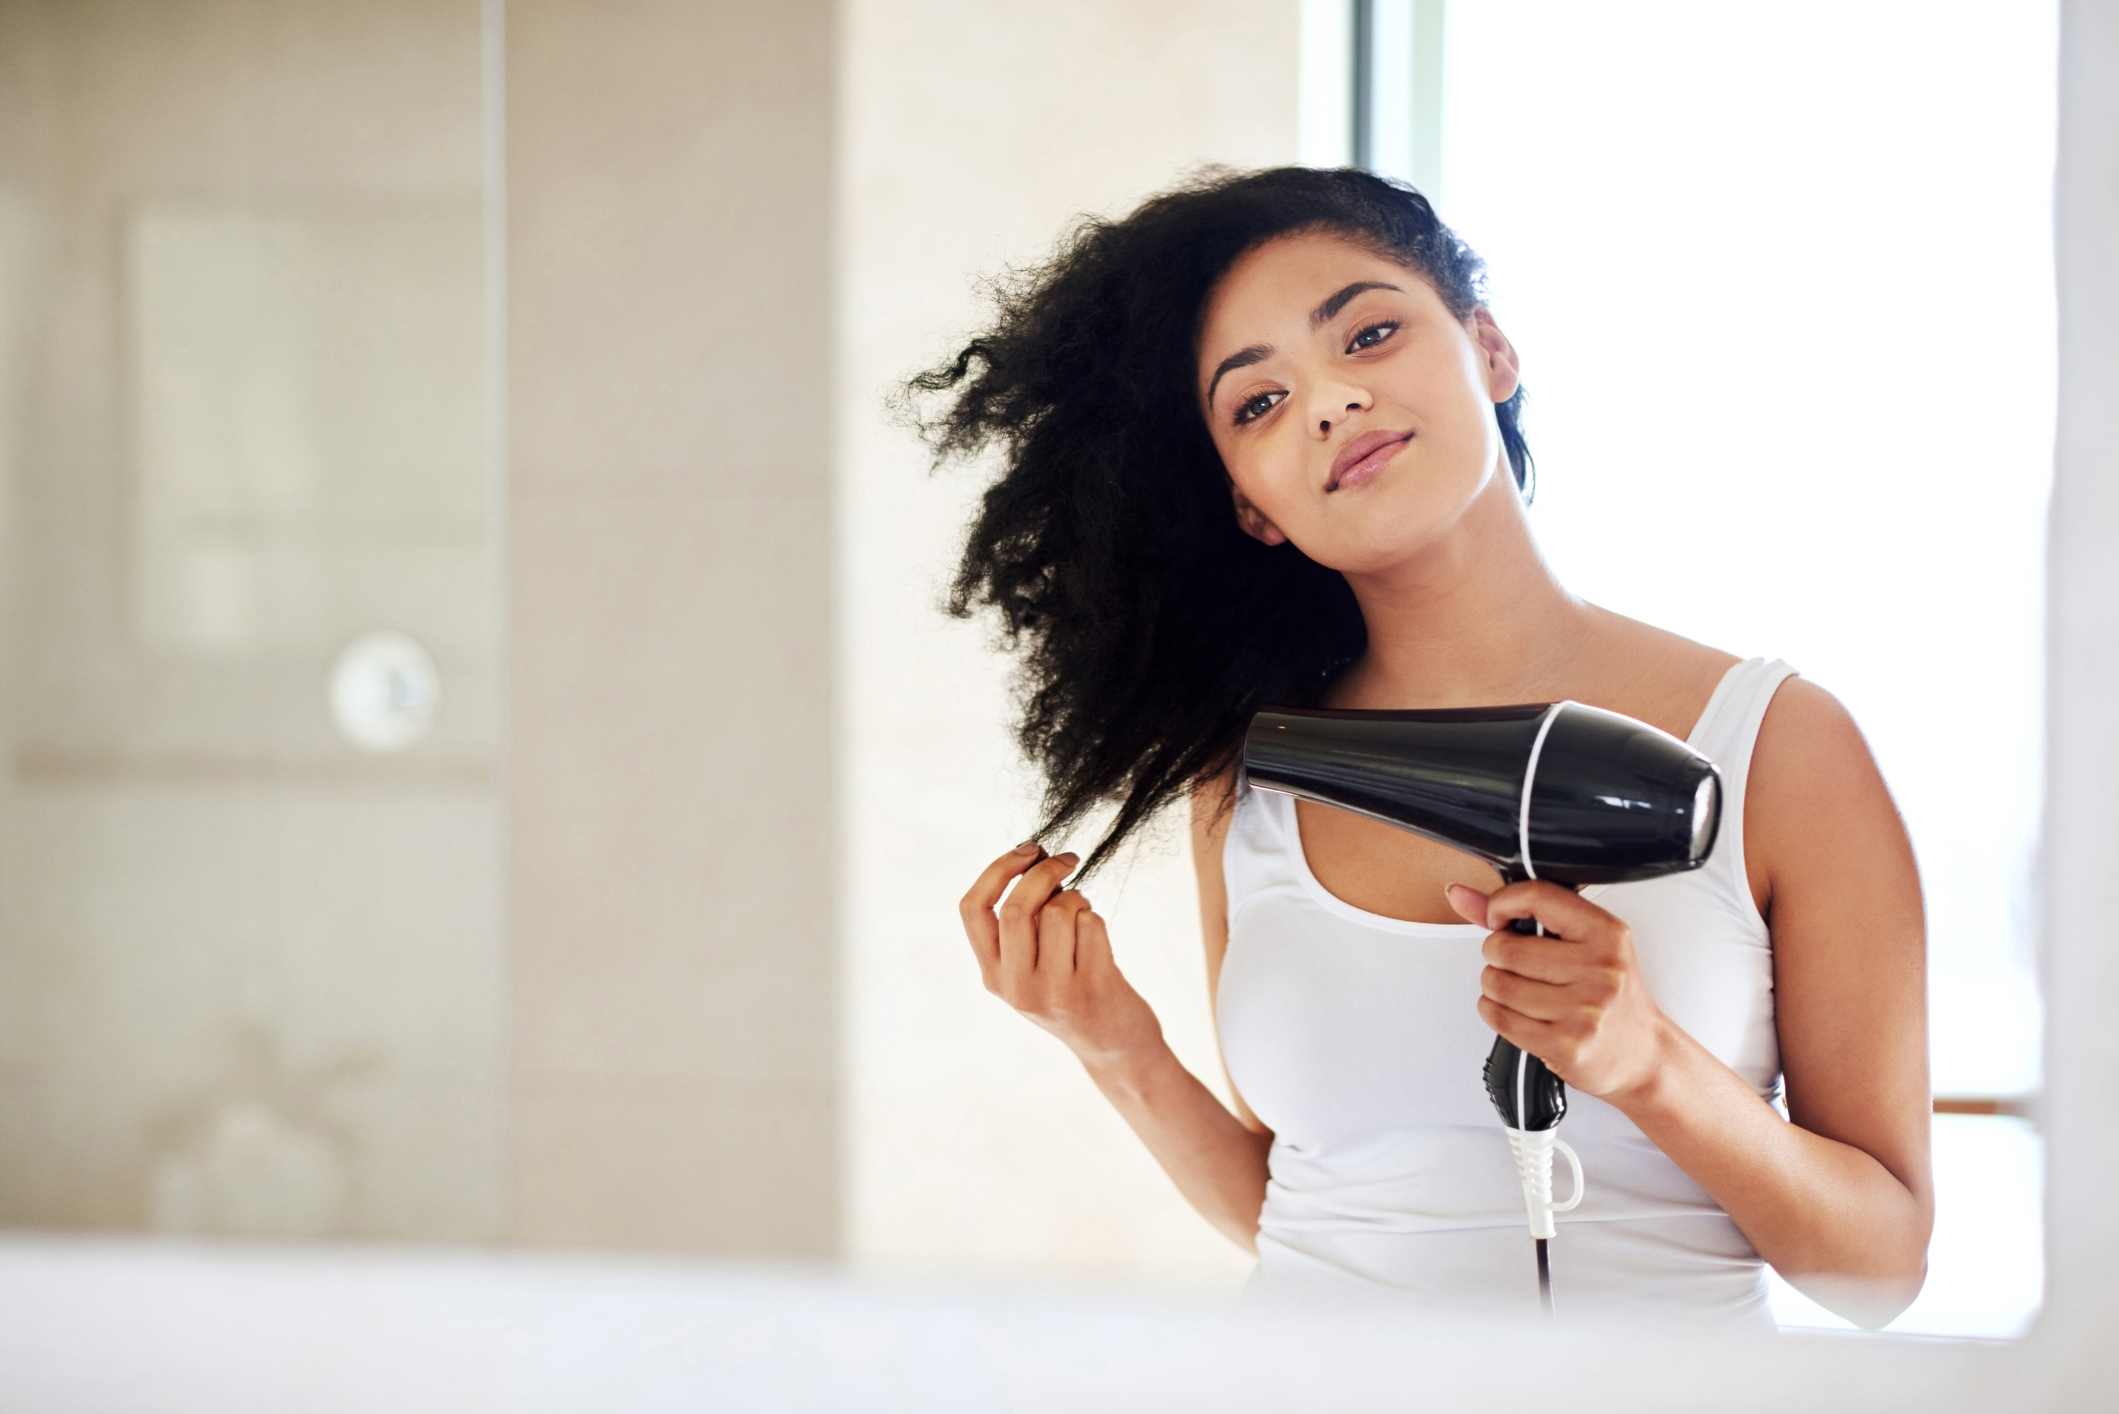 Shot of a young woman drying her hair in the bathroom